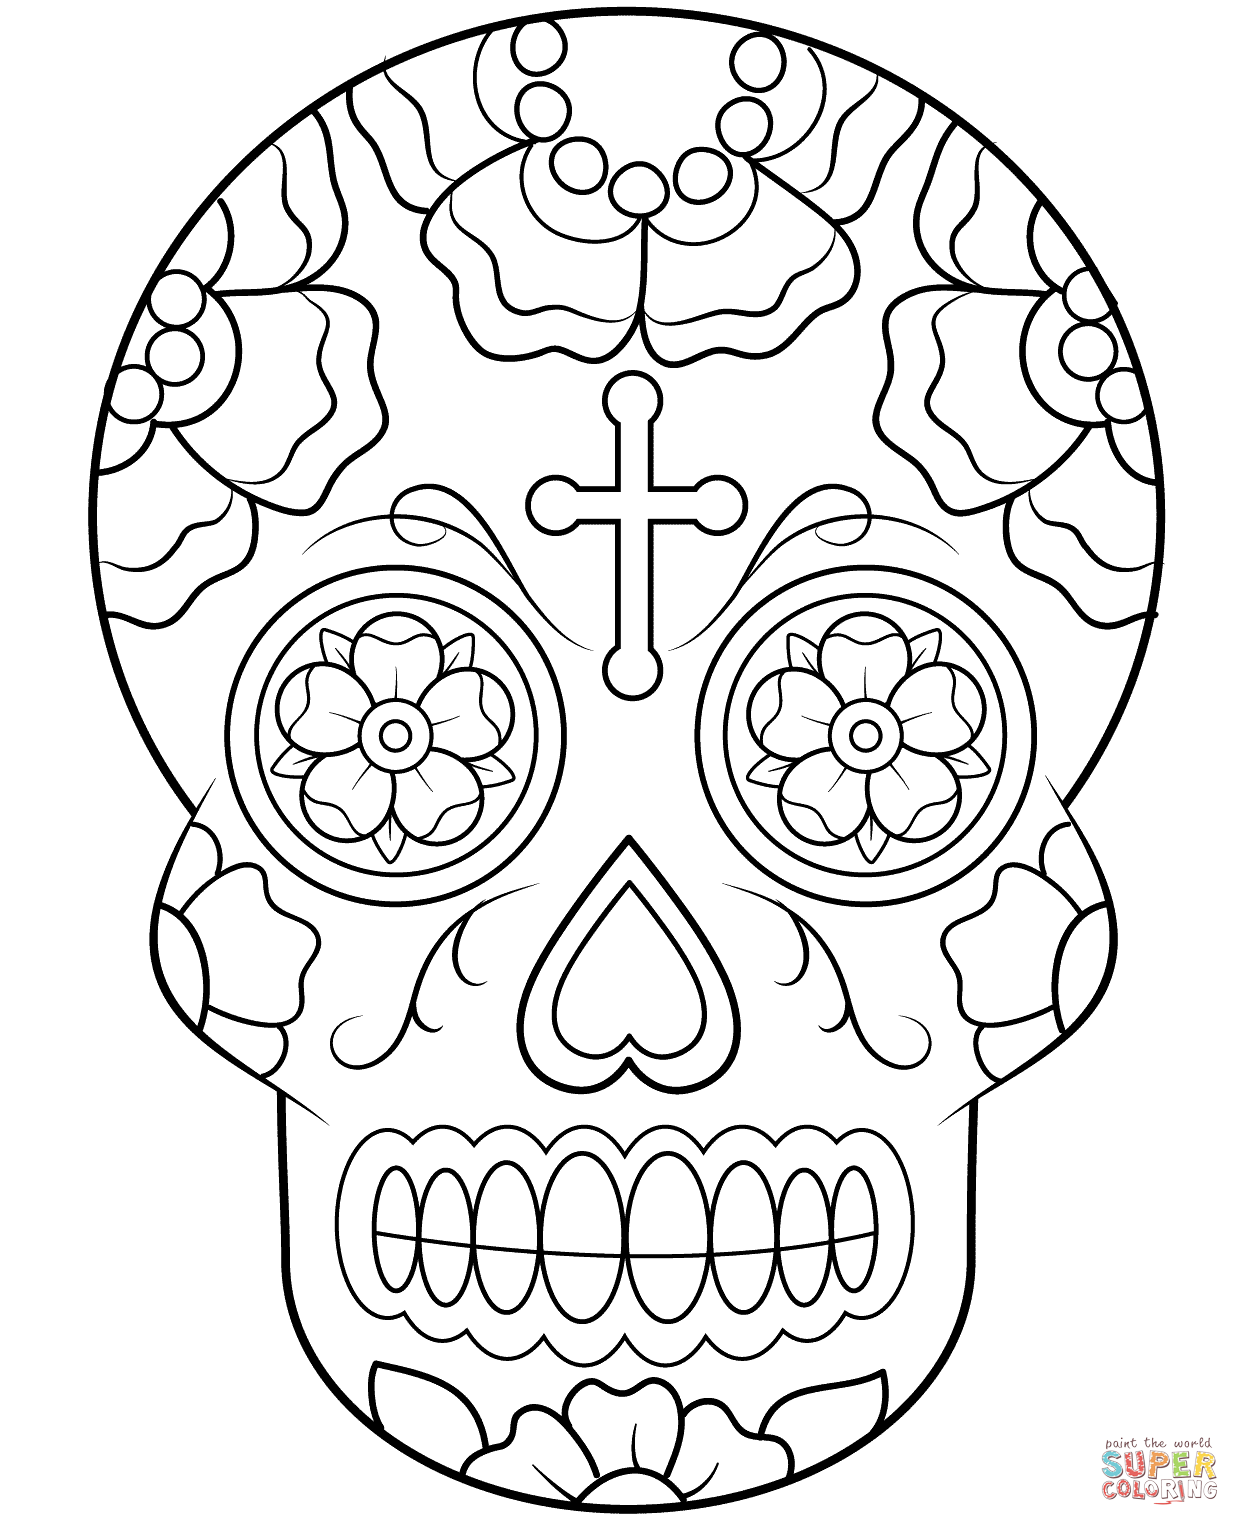 Skull Drawing Reference at GetDrawings.com | Free for personal use ...